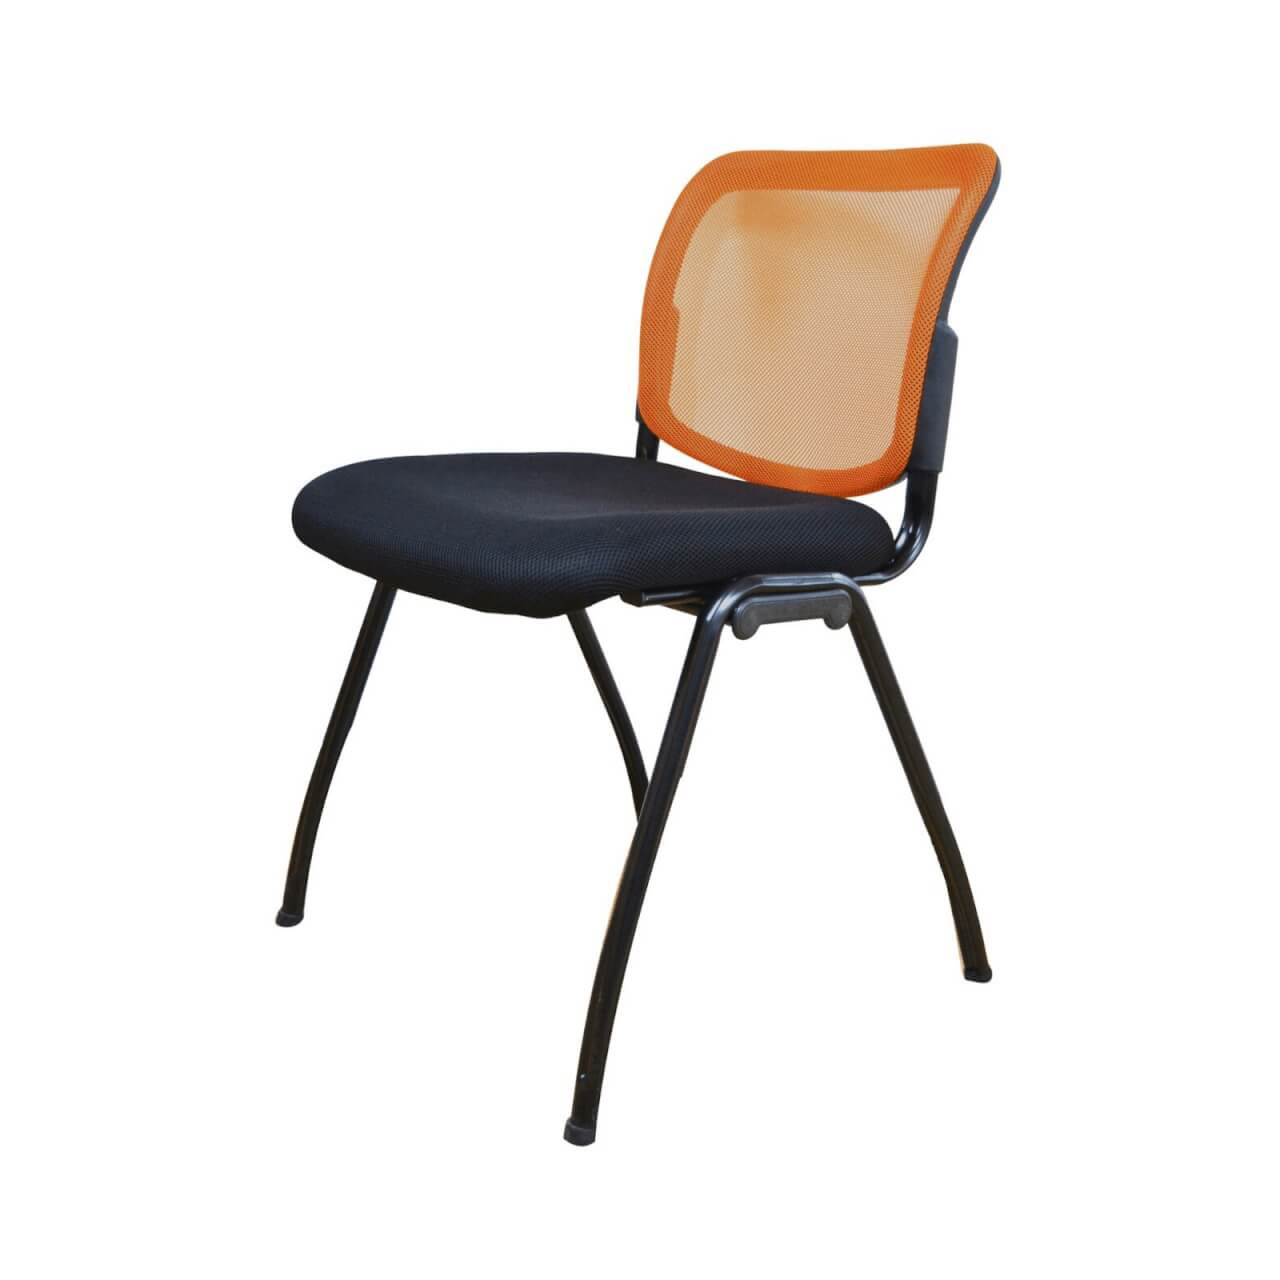 deluxe-vc-meshback-chair-orange